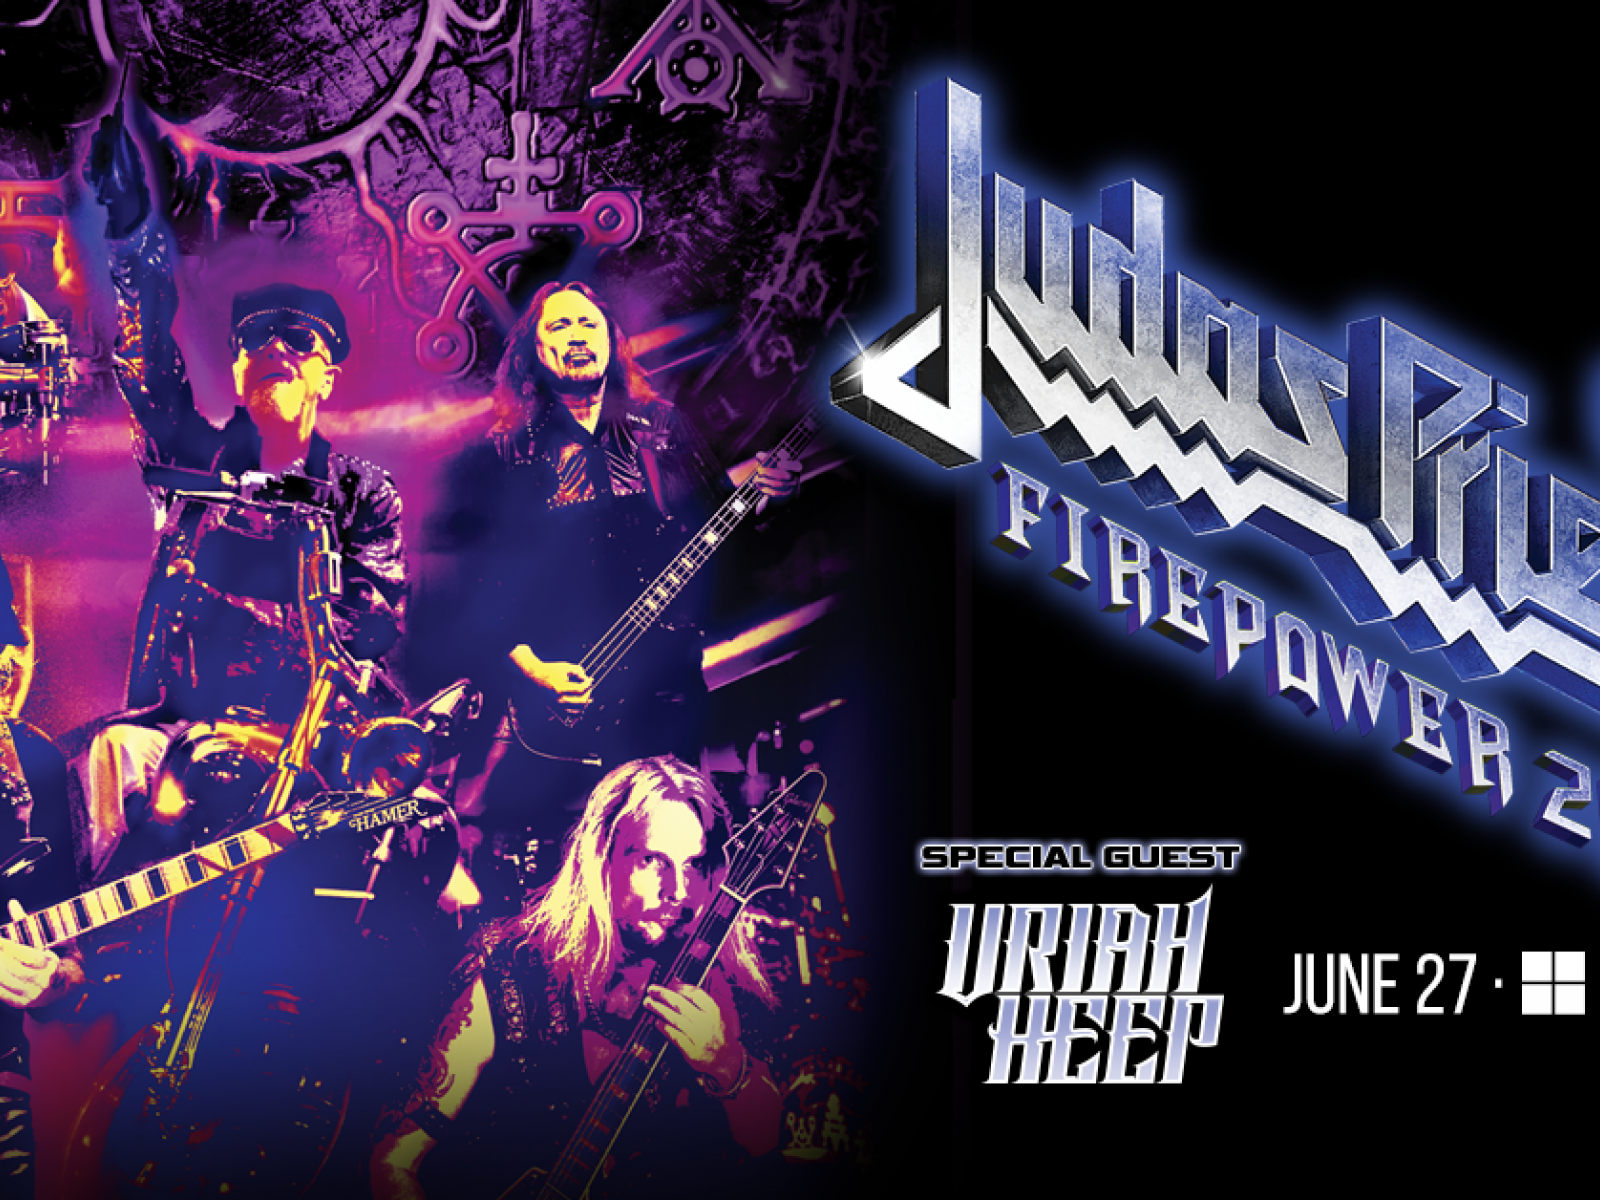 Main image for event titled Judas Priest